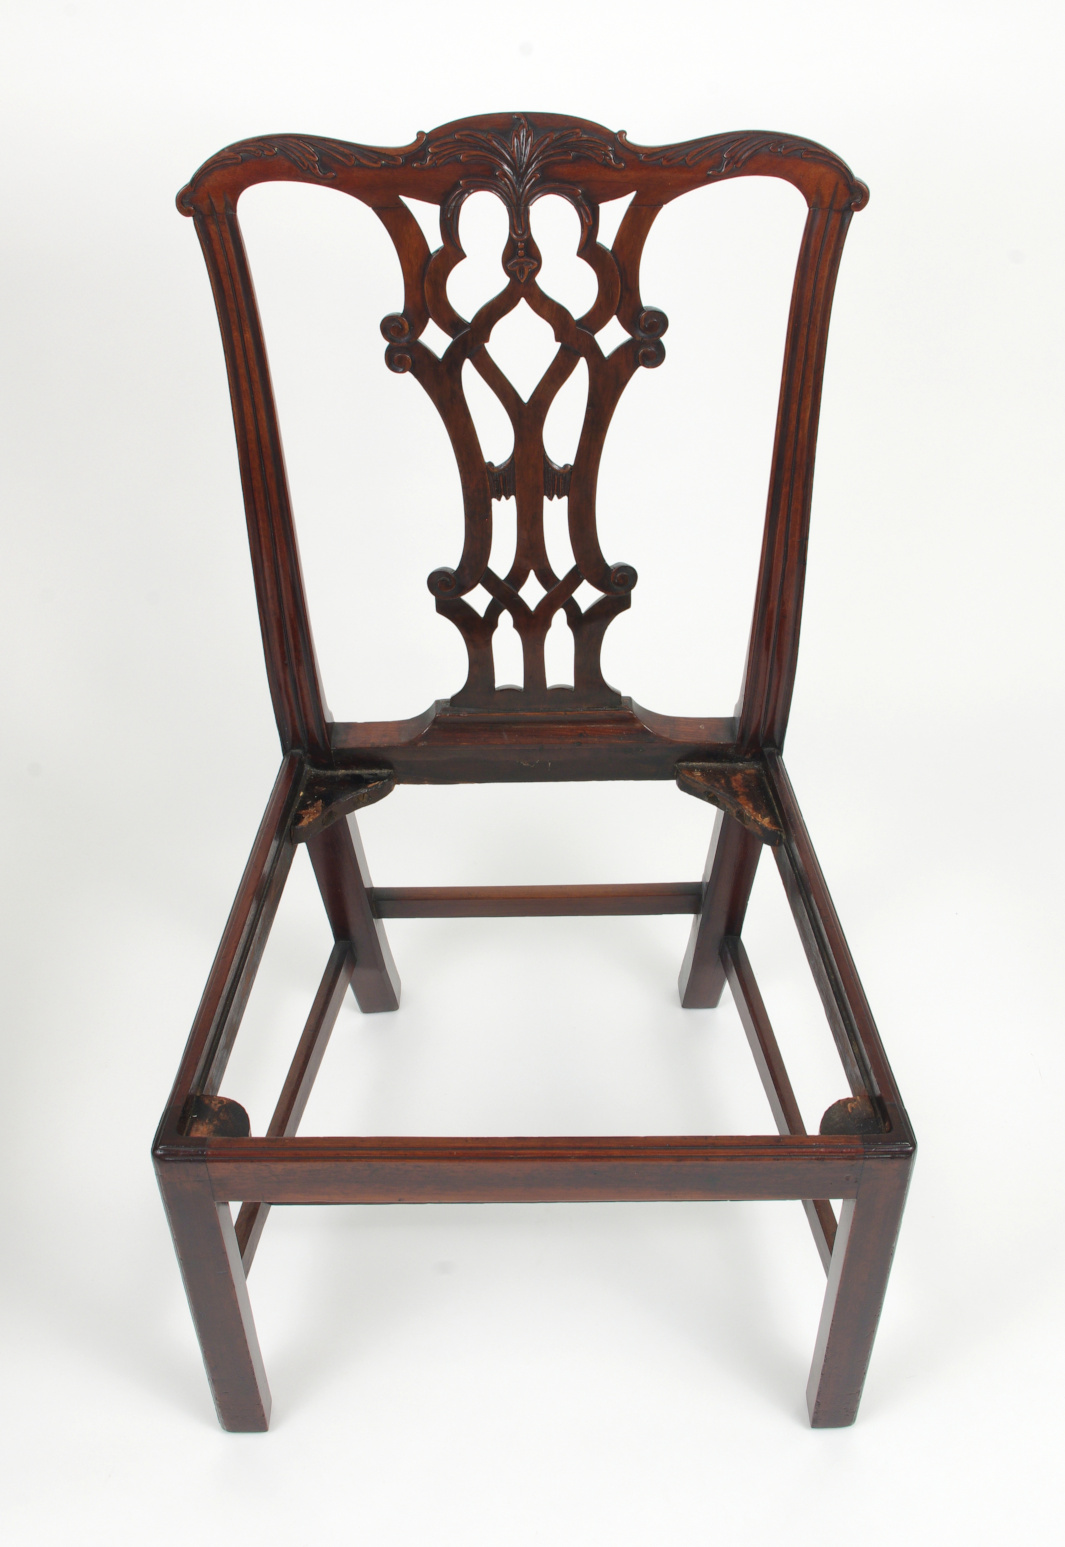 View 11: Set of Eight Chippendale Style Mahogany Dining Chairs (6+2), early 19th c.